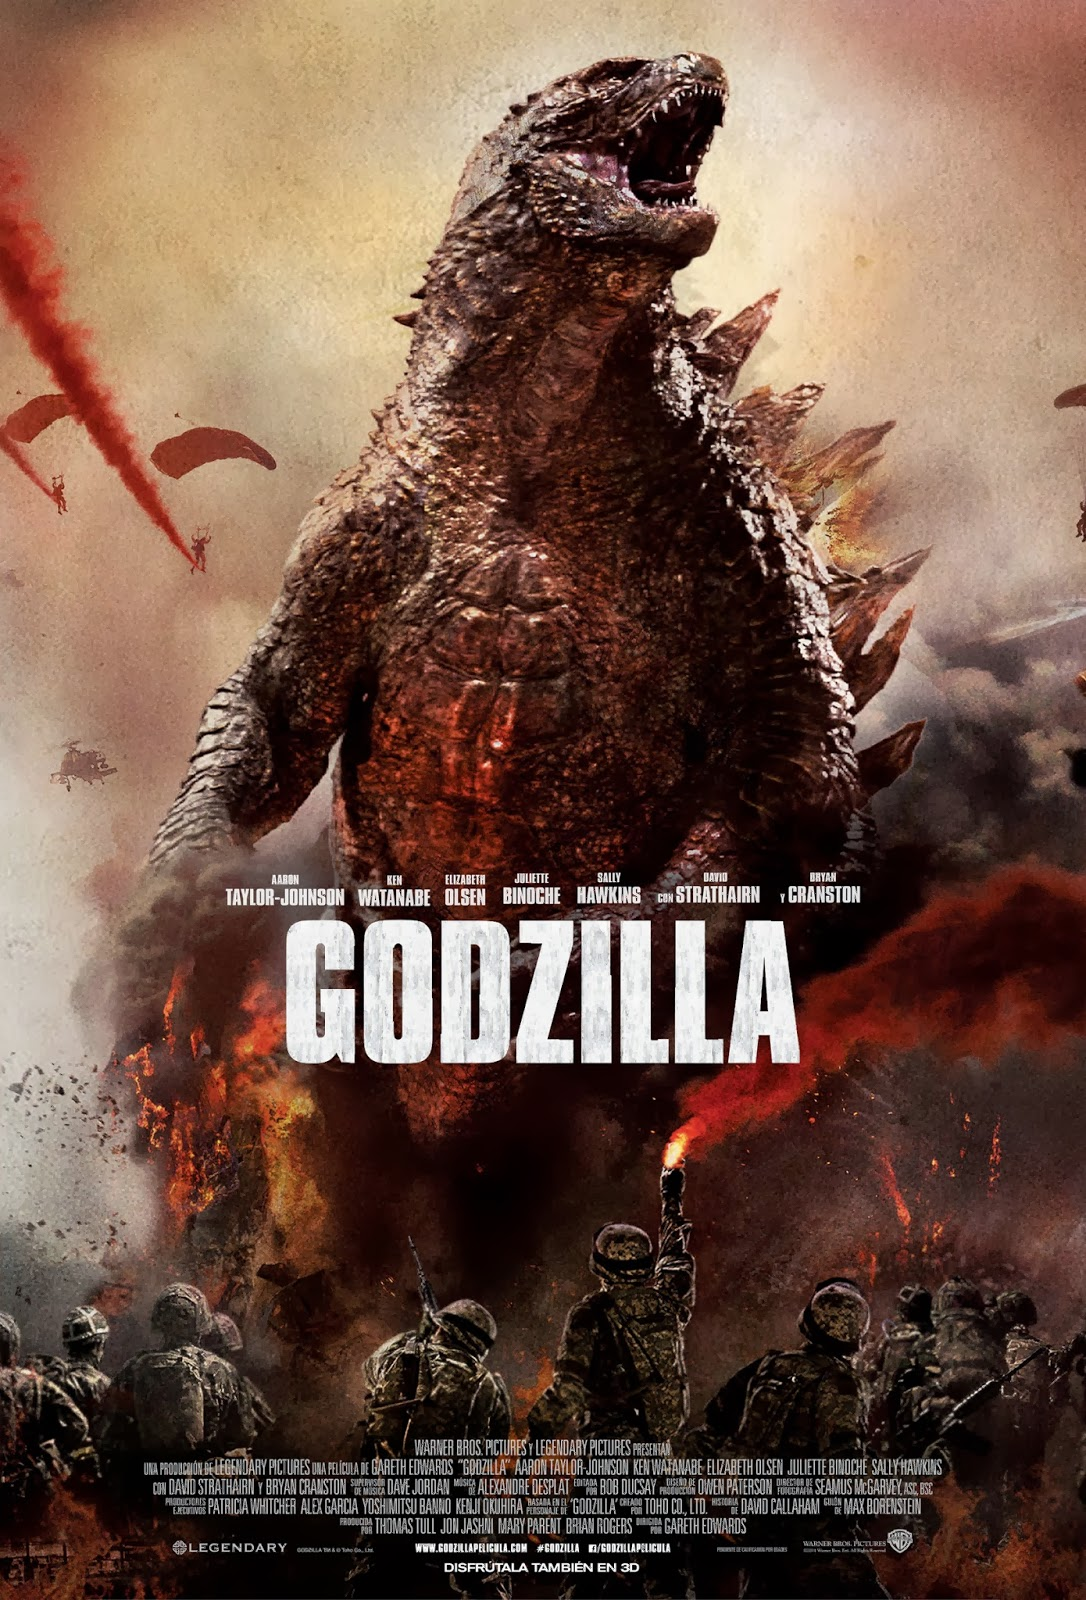 Godzilla is another of the best known Gareth Edwards movies.